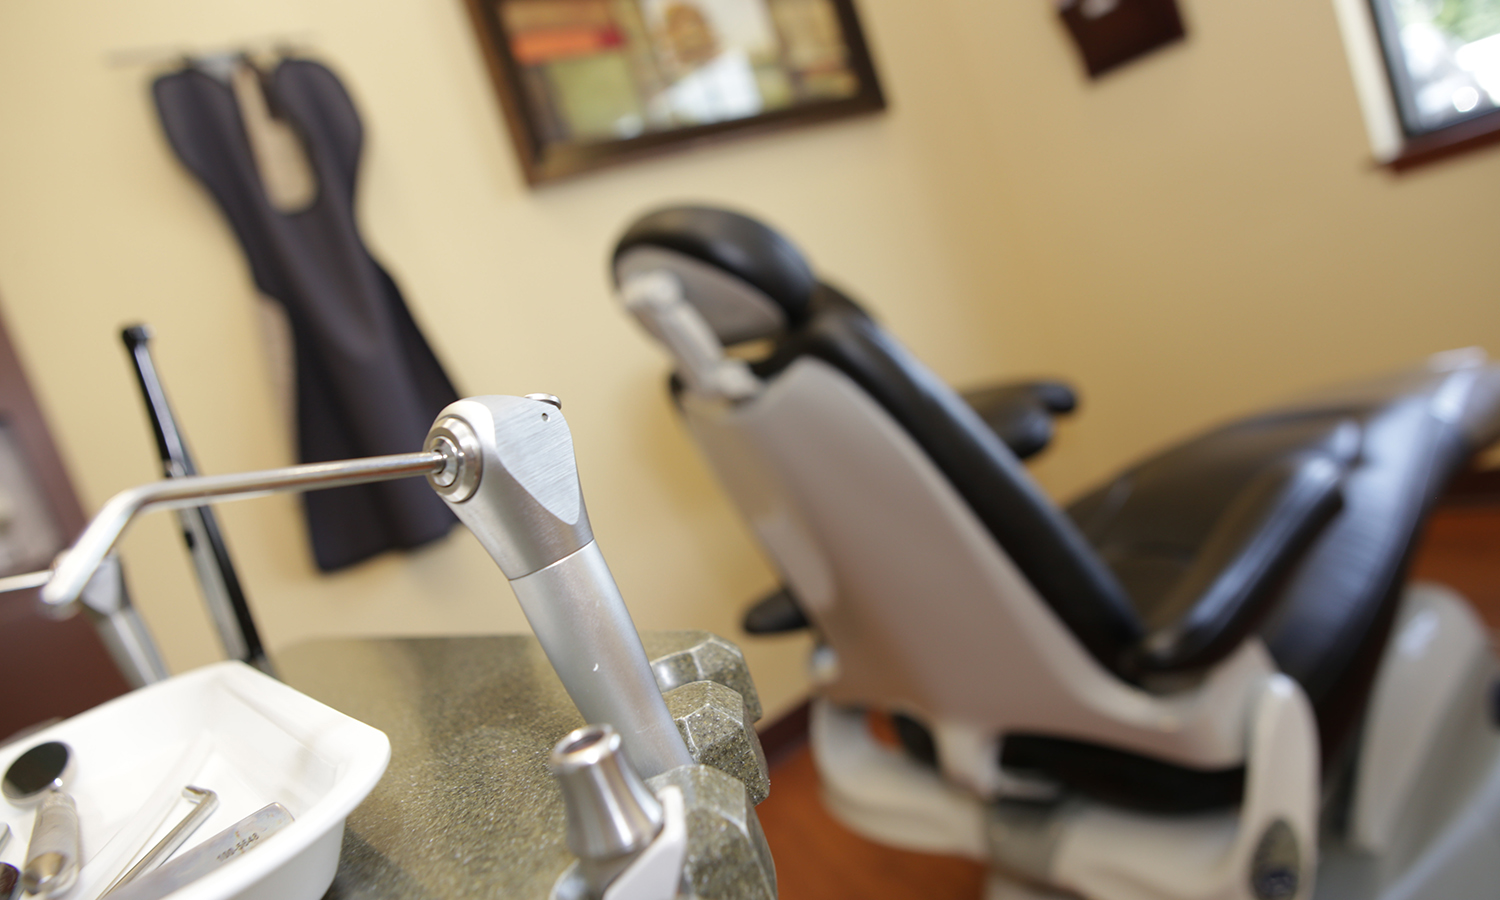 Dentist office of Doug Klein DDS in Grandville MI 49418 - KleinDentistry.com